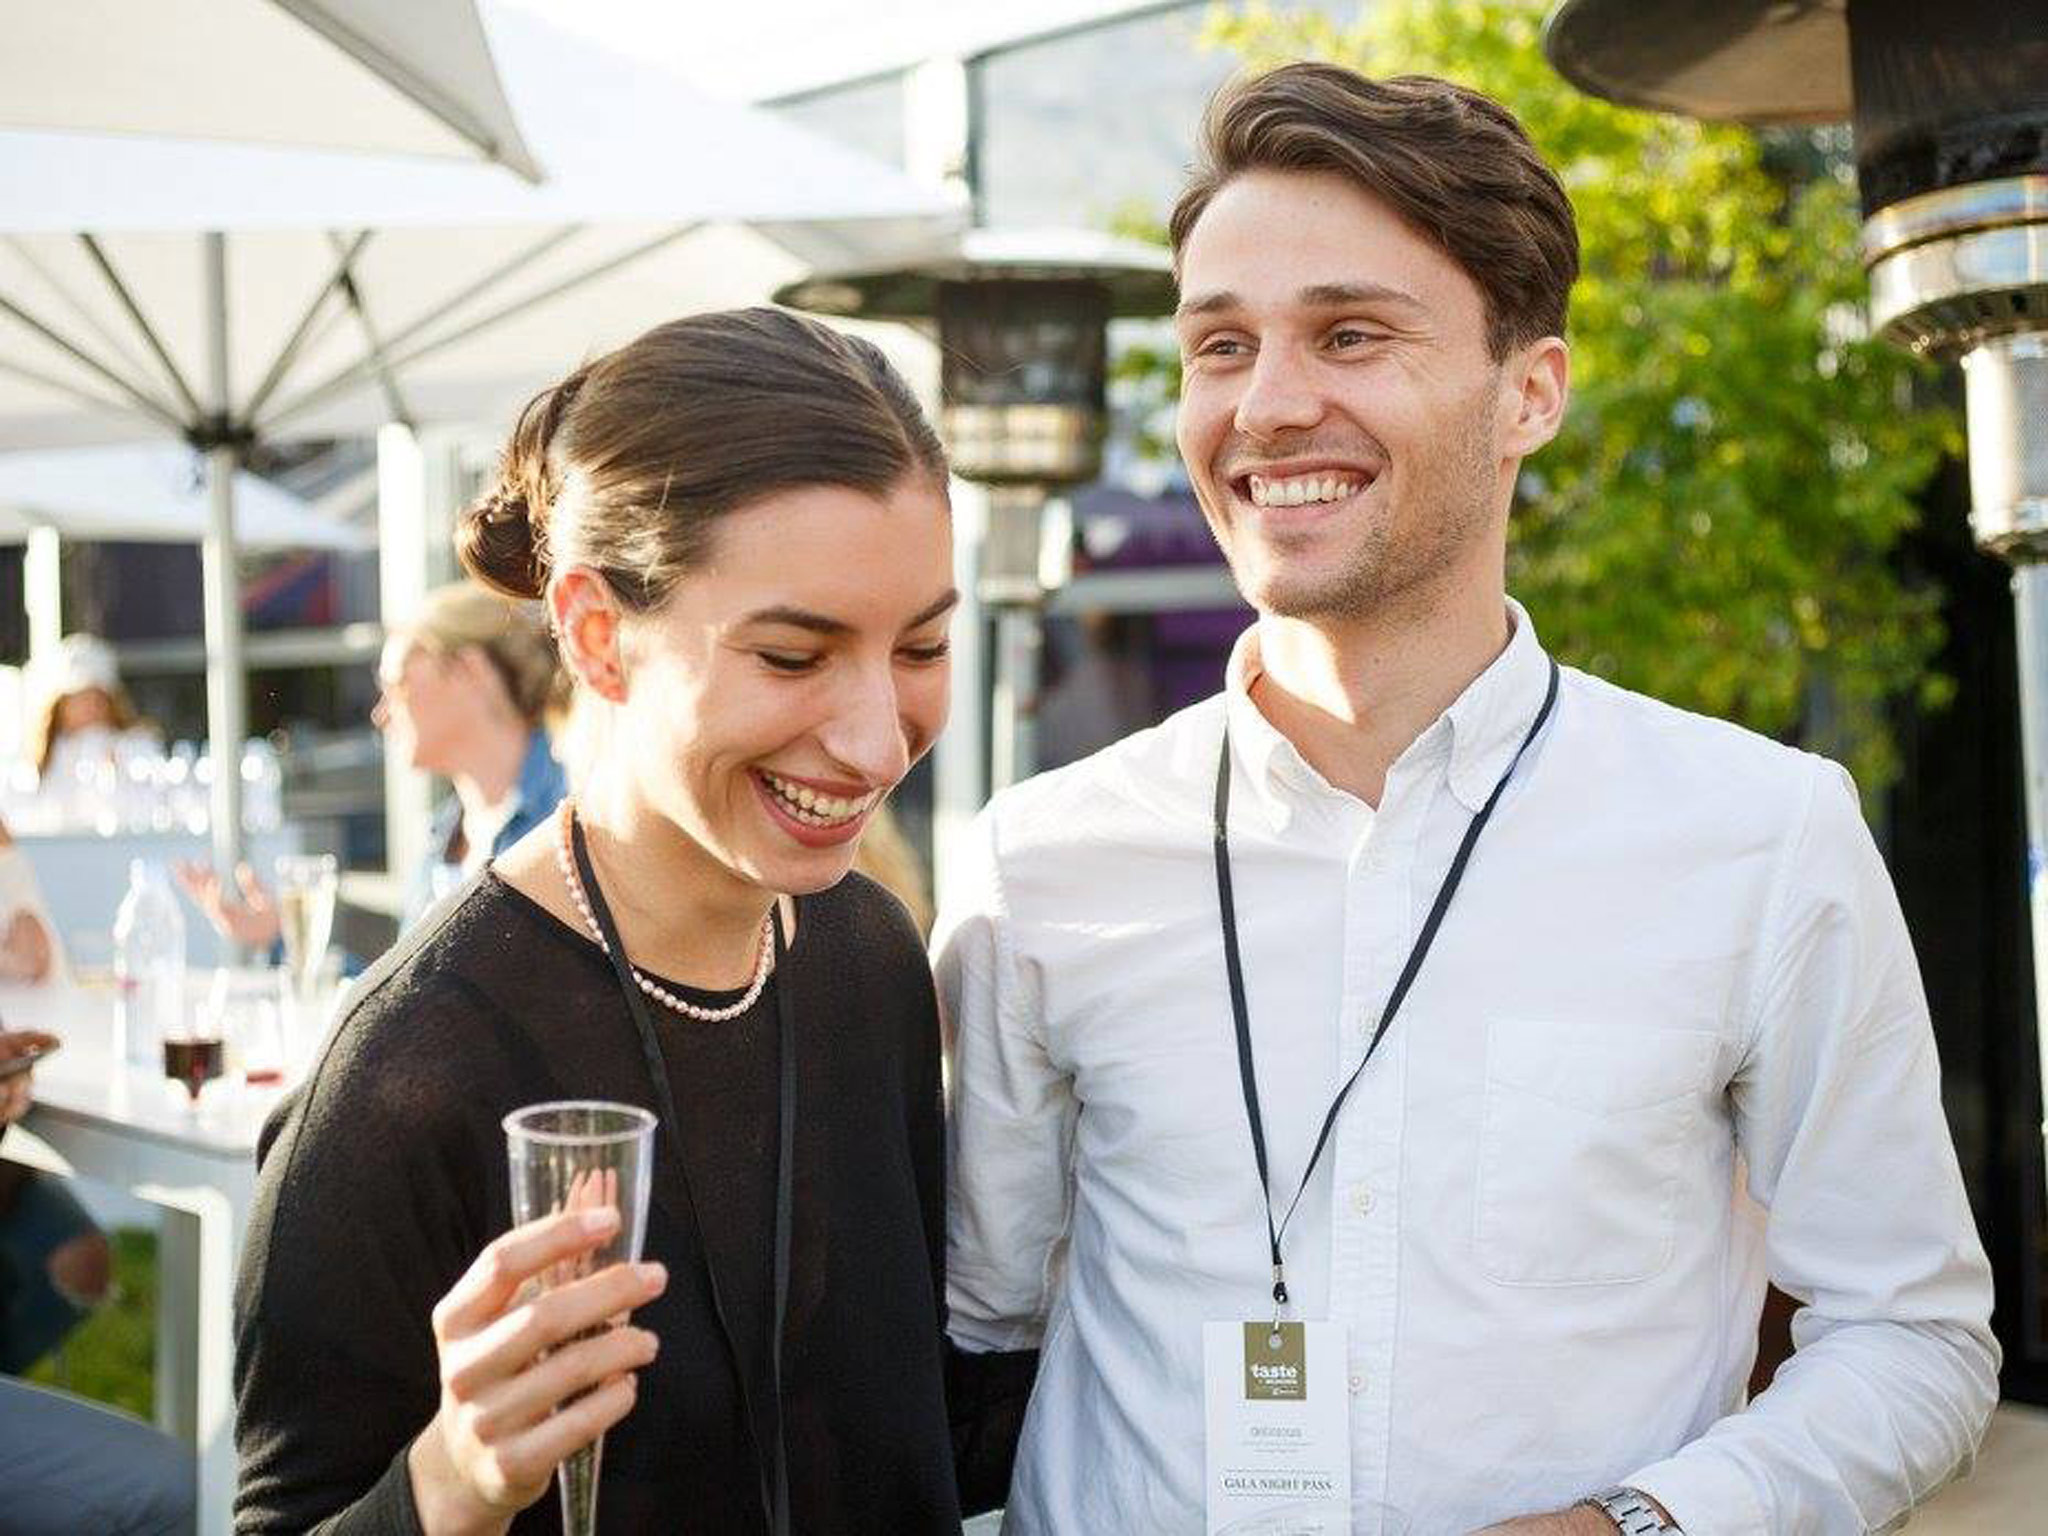 Taste of Sydney in partnership with Electrolux: for friends who feast